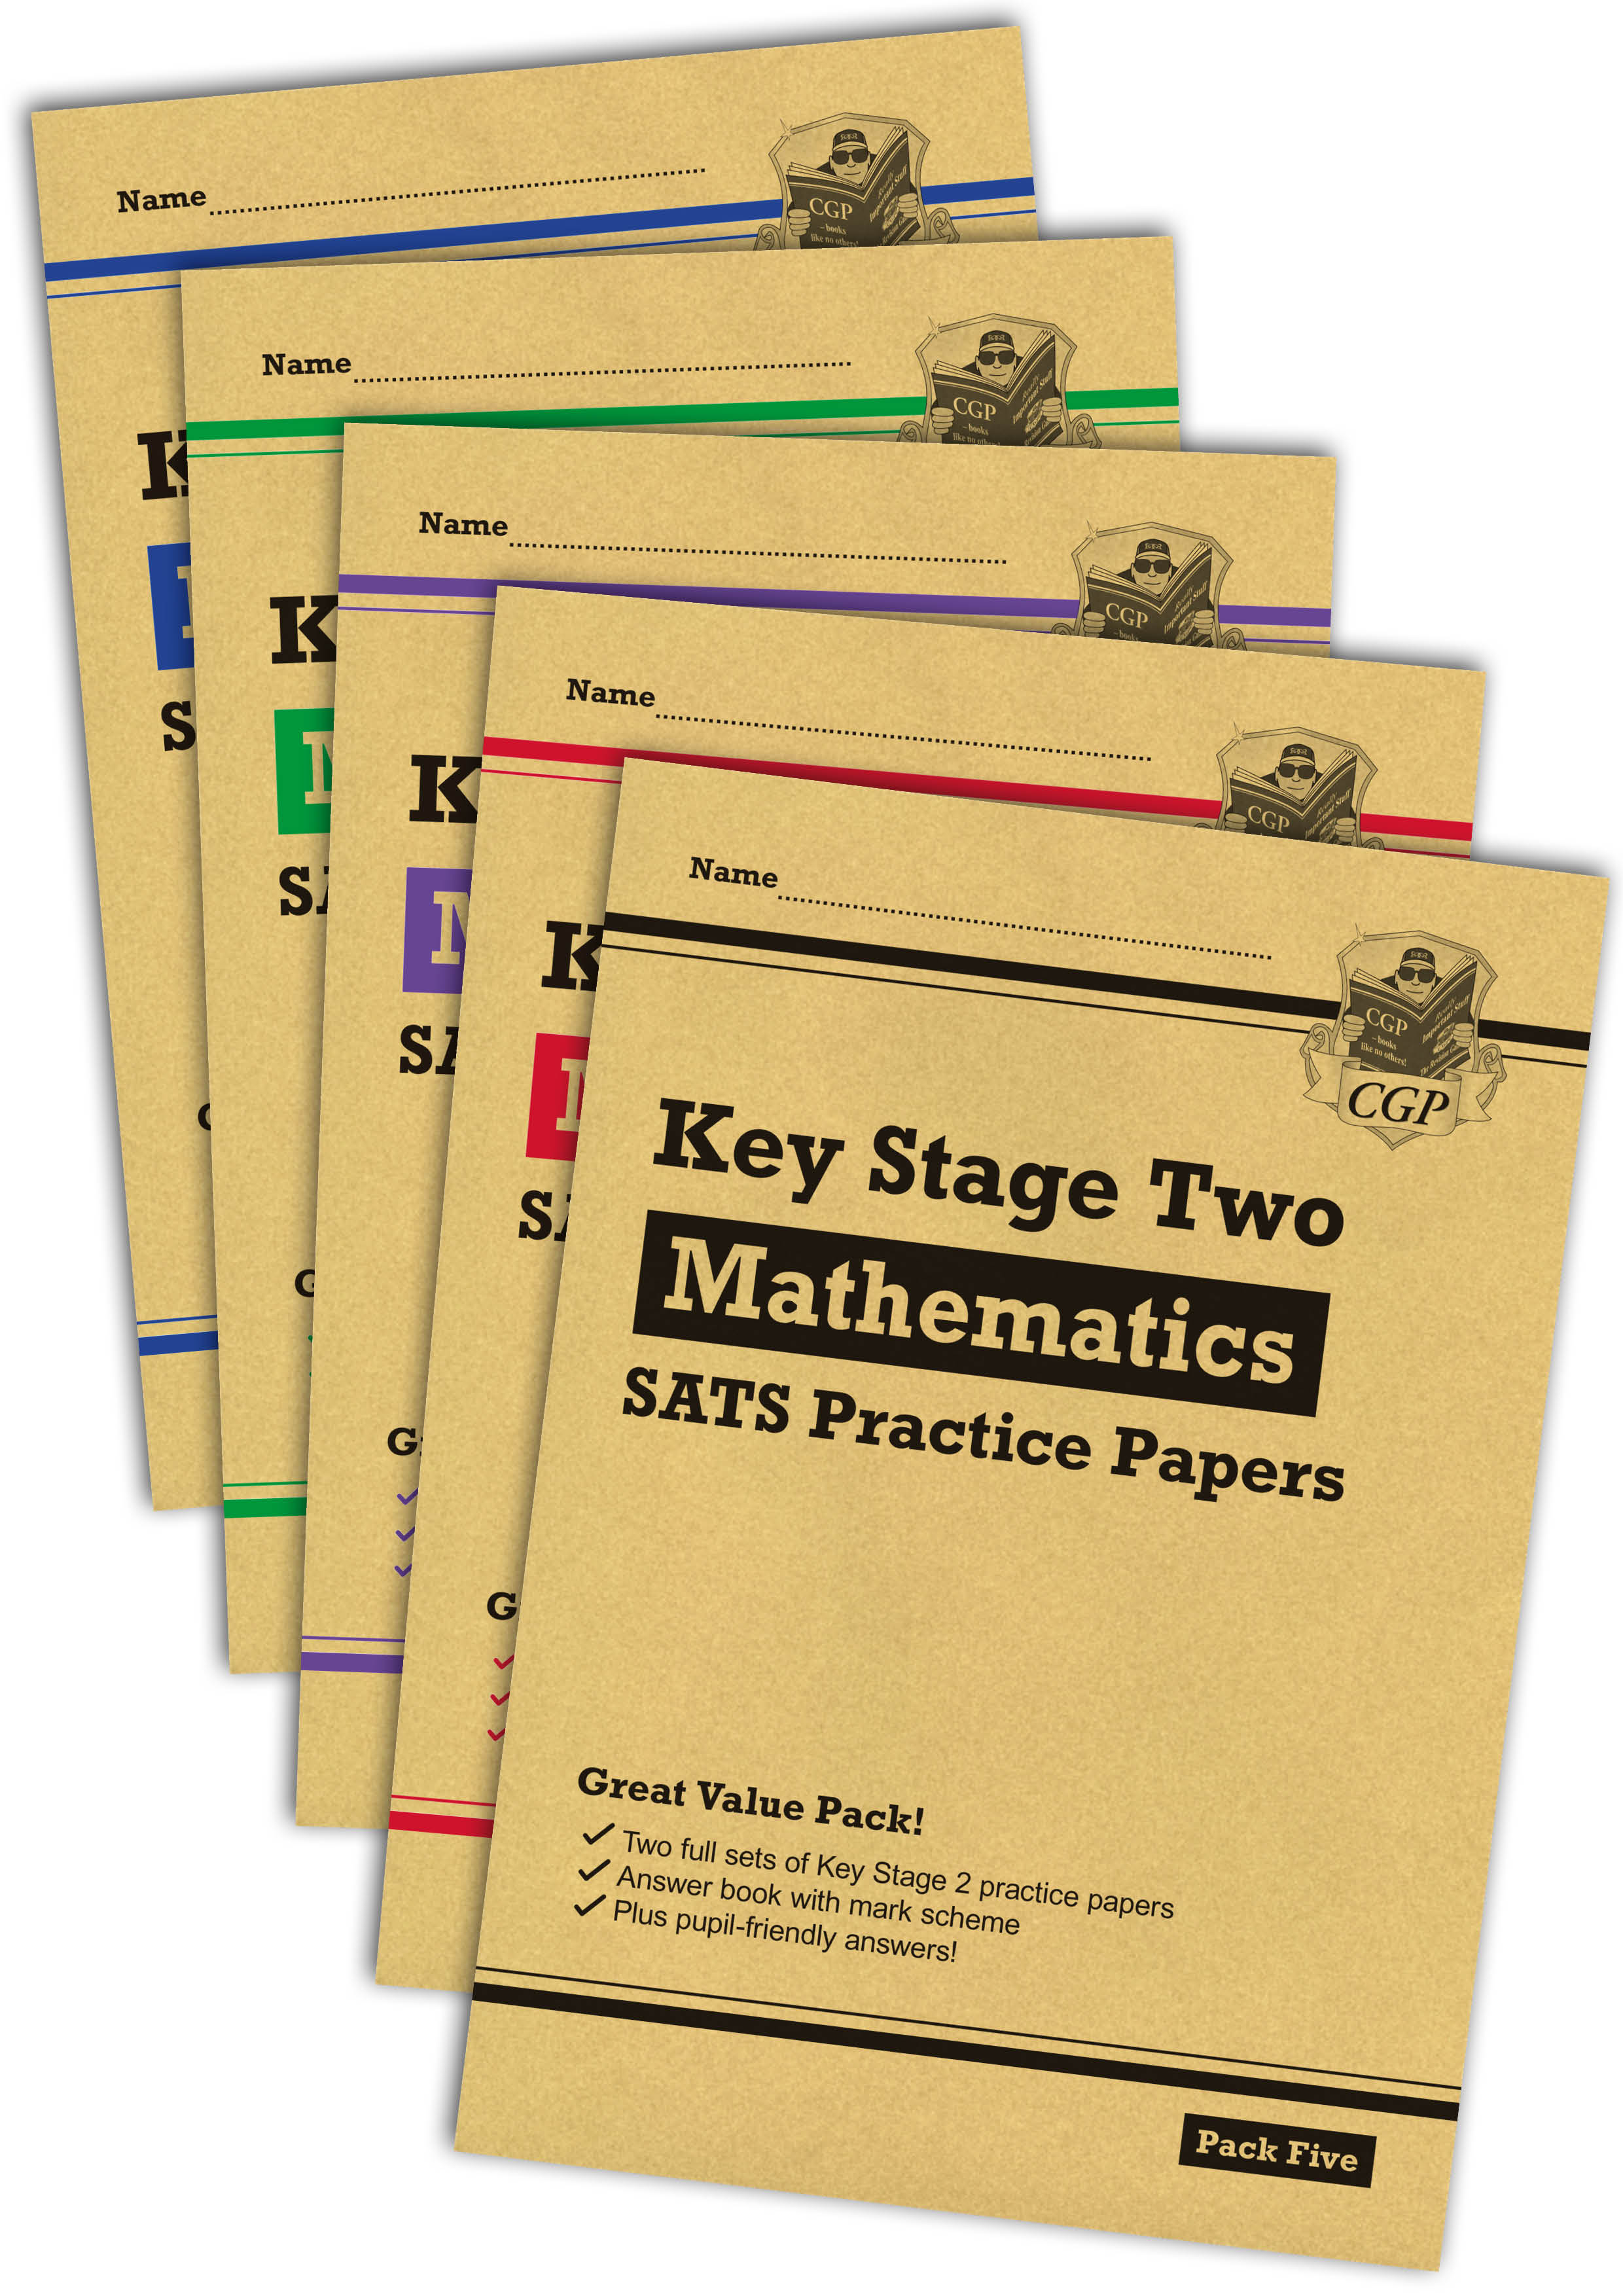 MHB5P23 - New KS2 Maths SATS Practice Paper Bundle: Packs 1, 2, 3, 4 & 5 (for the 2021 tests)